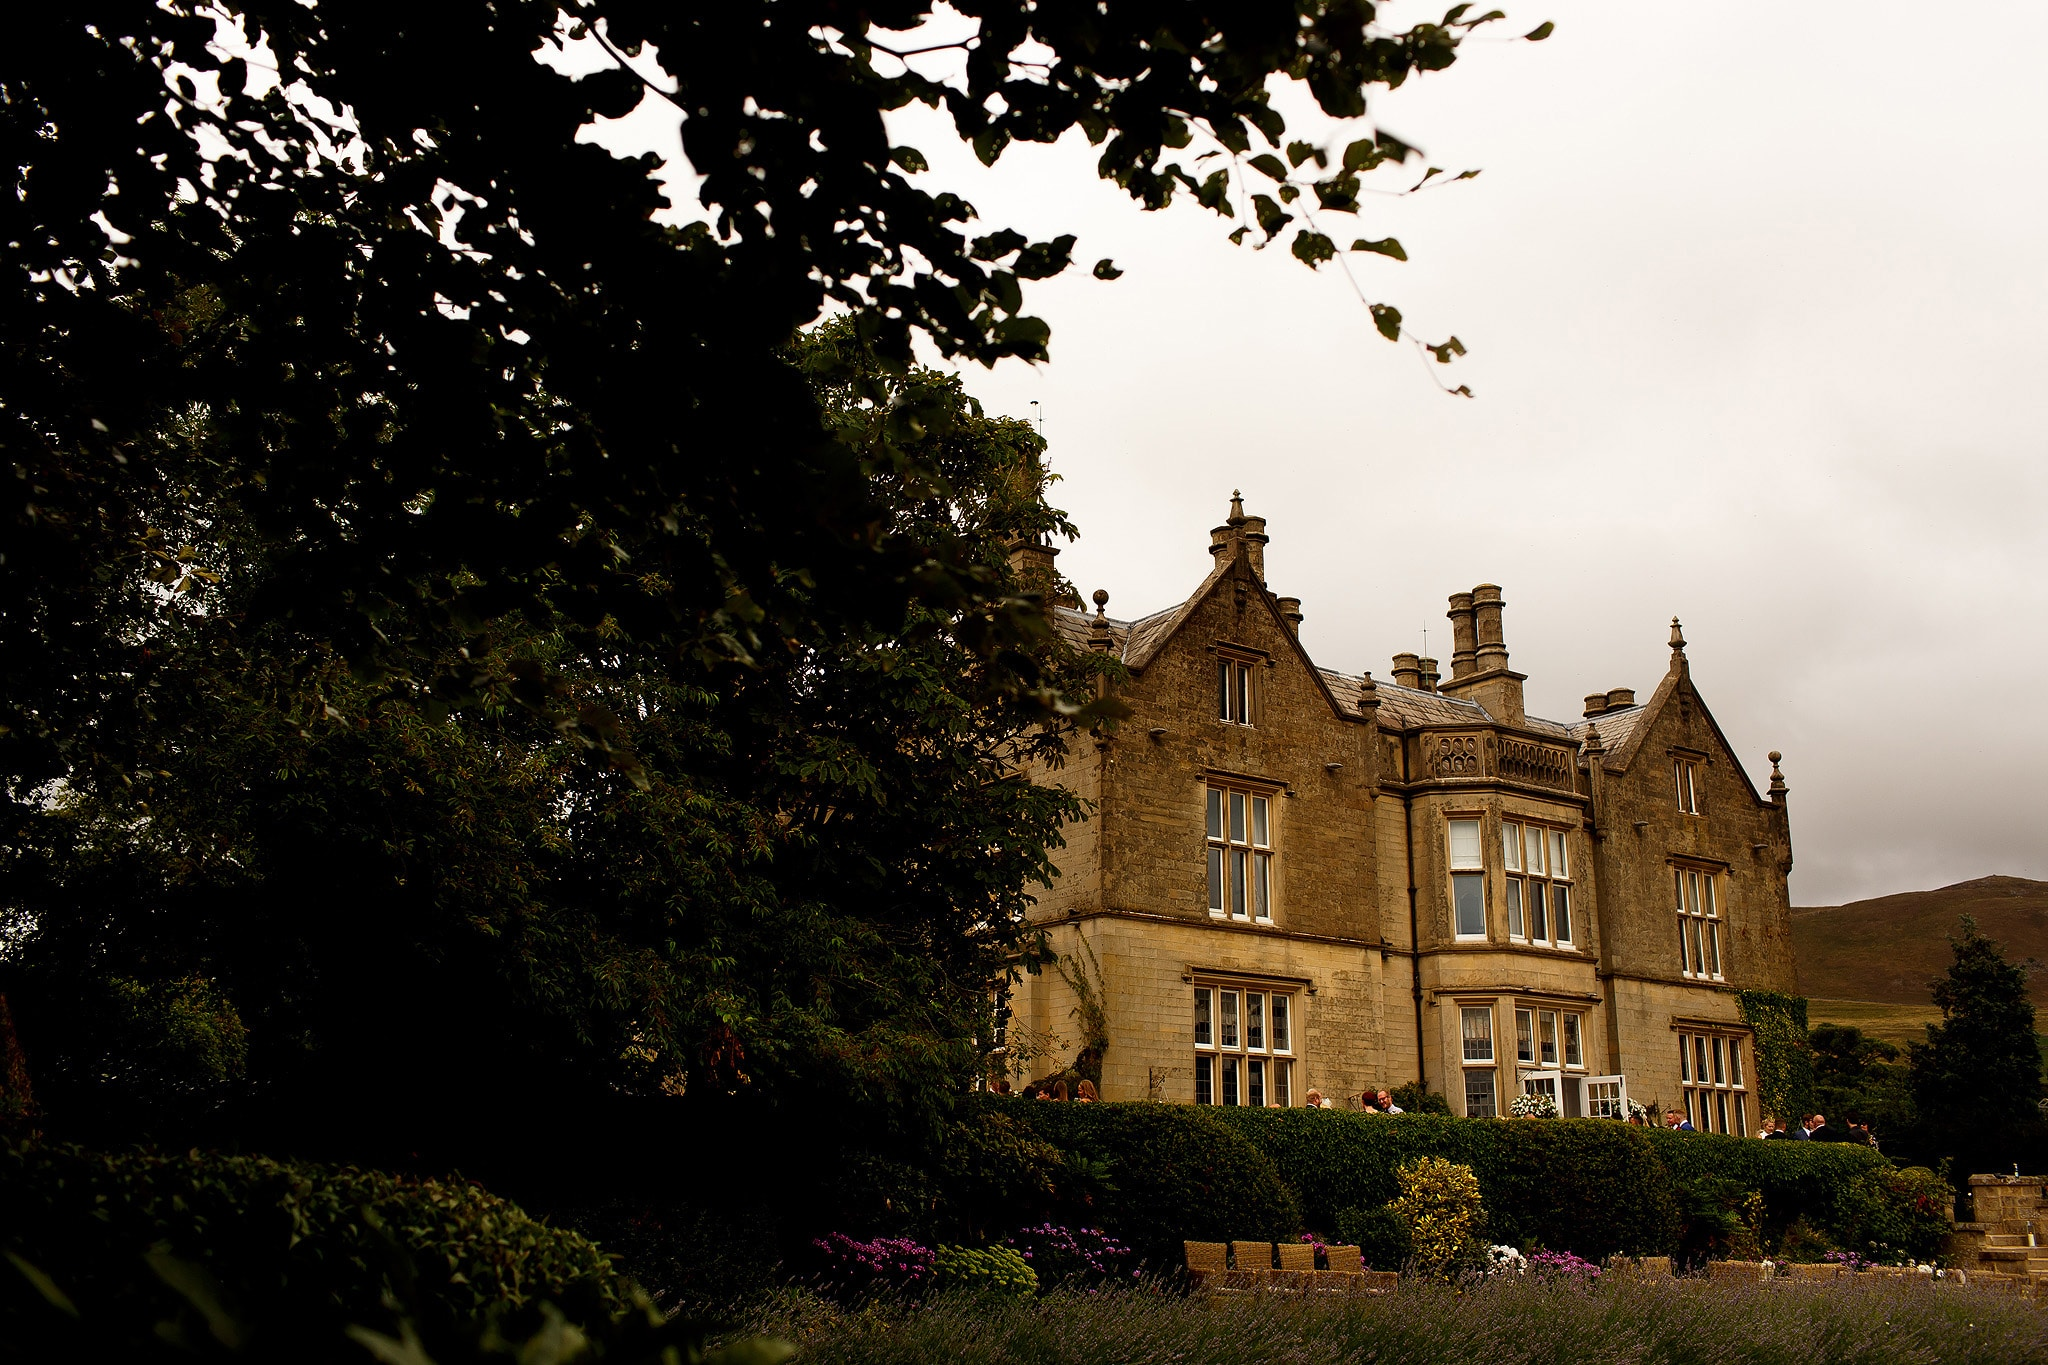 Photograph of wedding venue Falcon Manor taken from the gardens